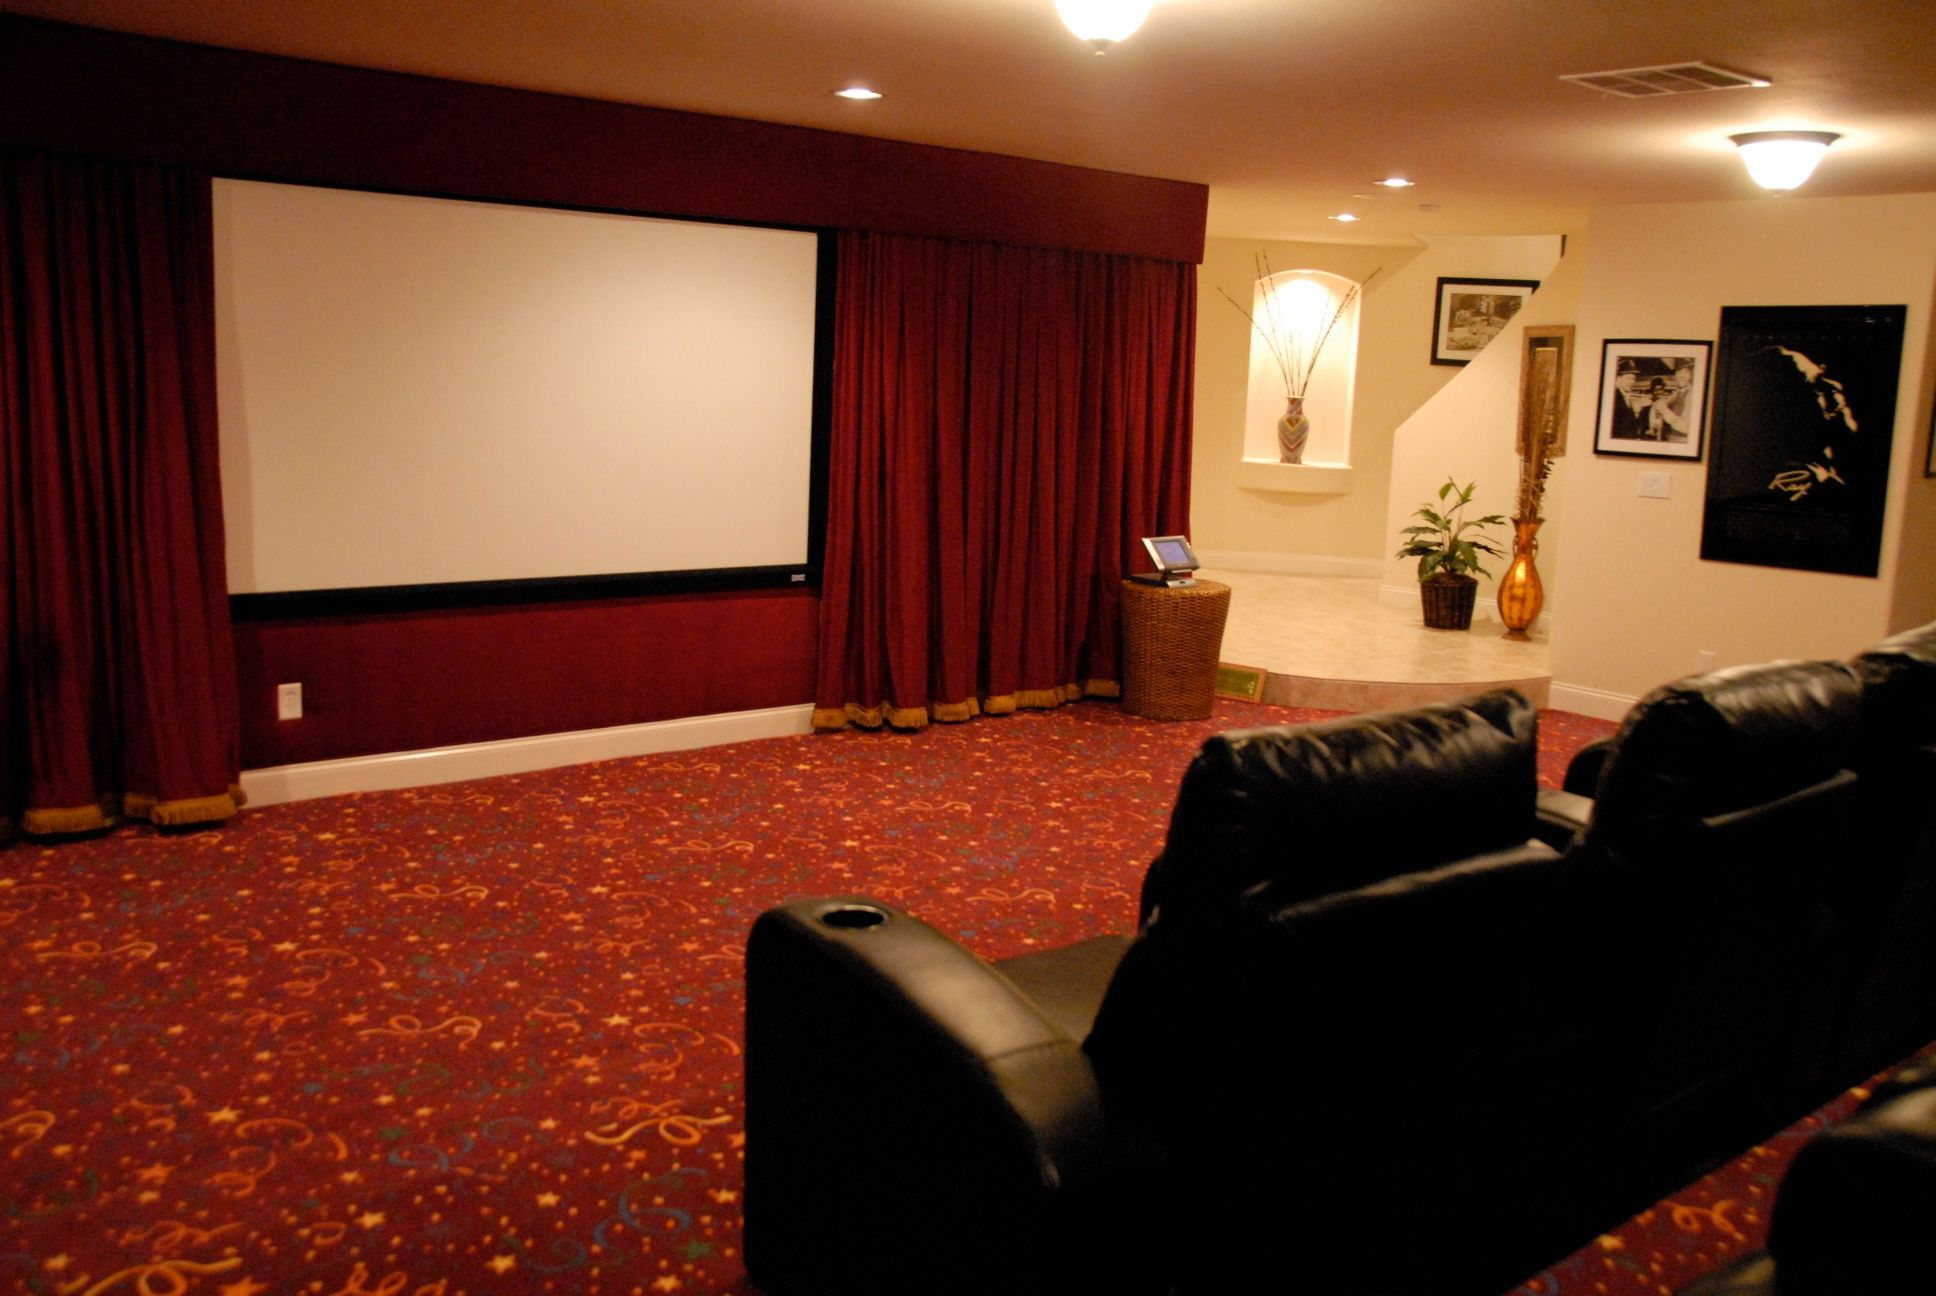 Movie Rooms With Curtains Decorations Sophisticated